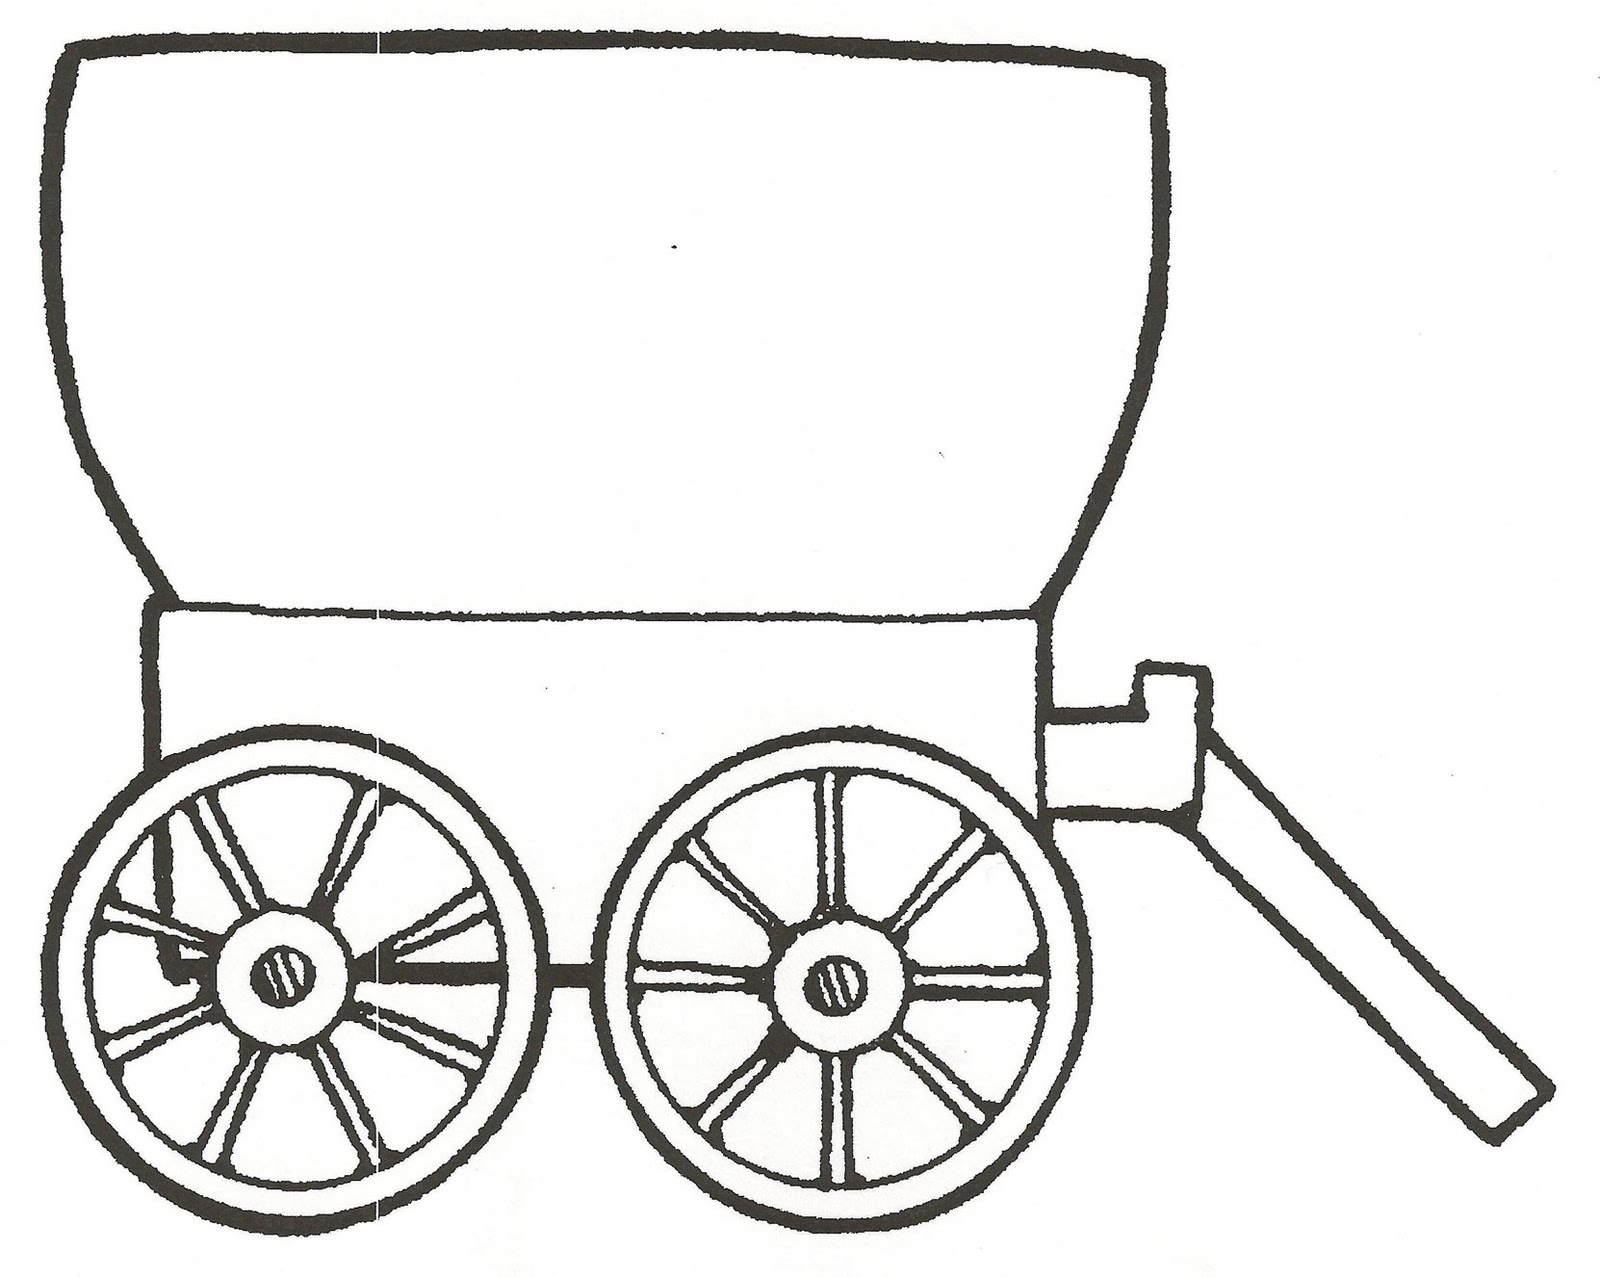 Covered wagon clip art | Clipart Panda - Free Clipart Images